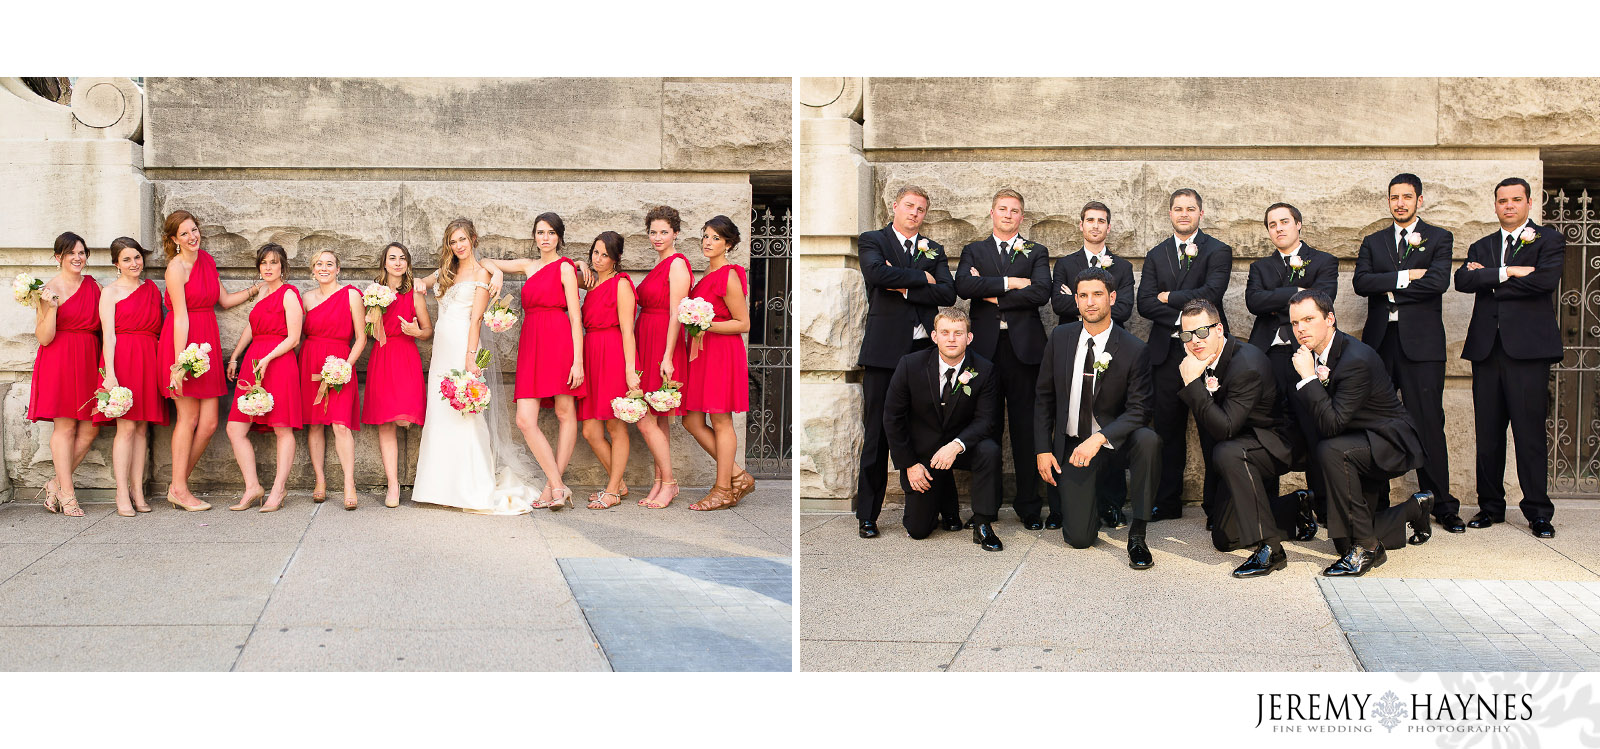 fun-wedding-group-photo-ideas-indianapolis.jpg